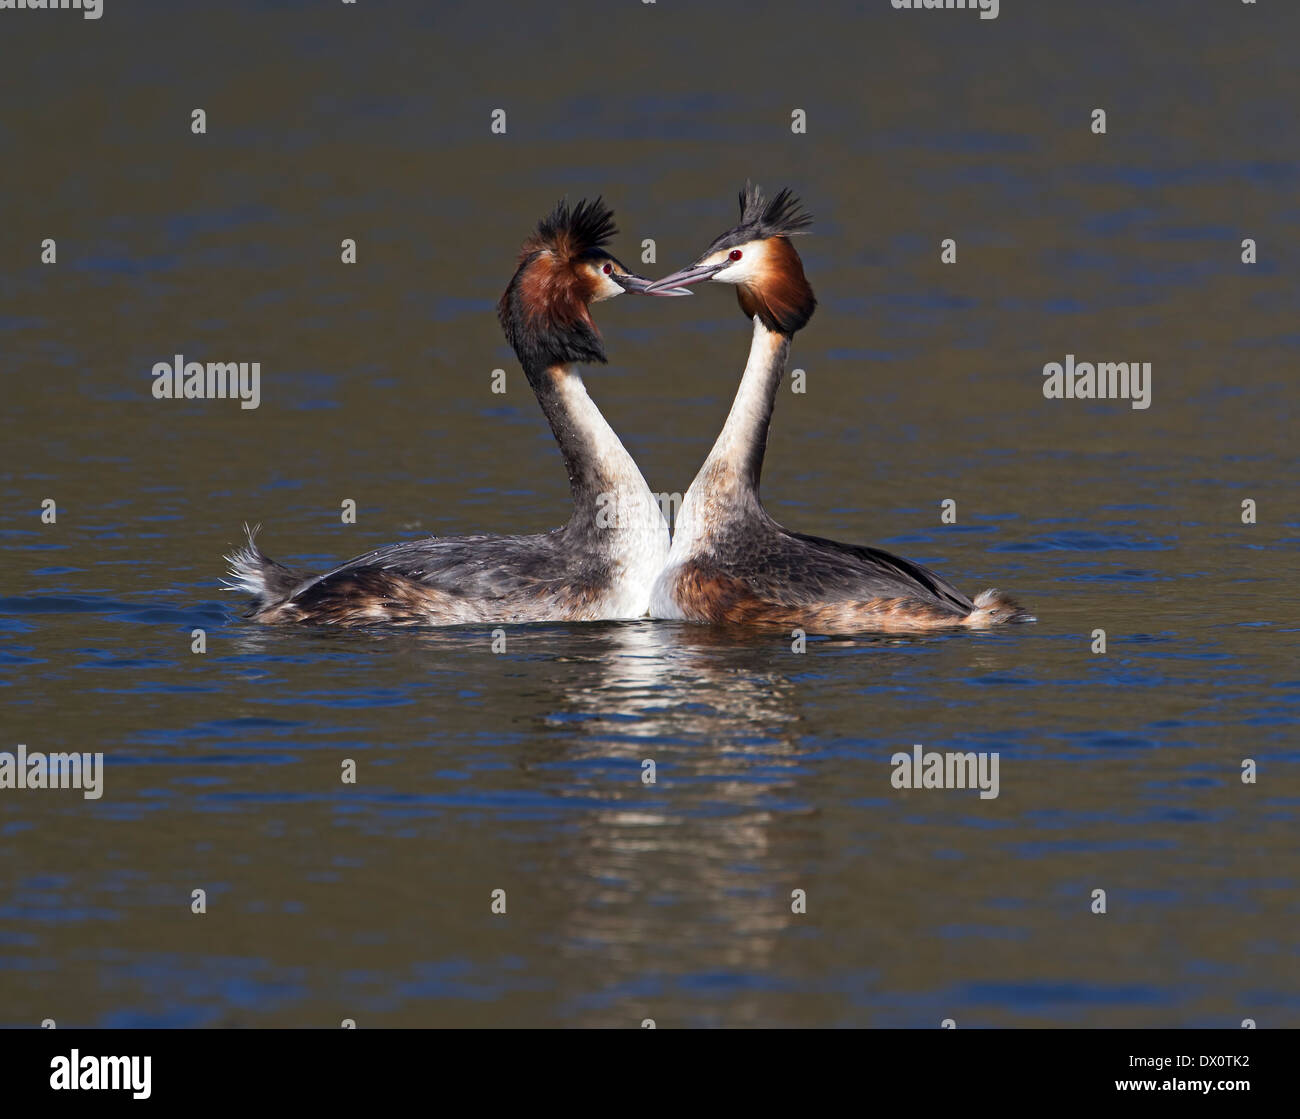 Great crested grebe courtship display; - Stock Image